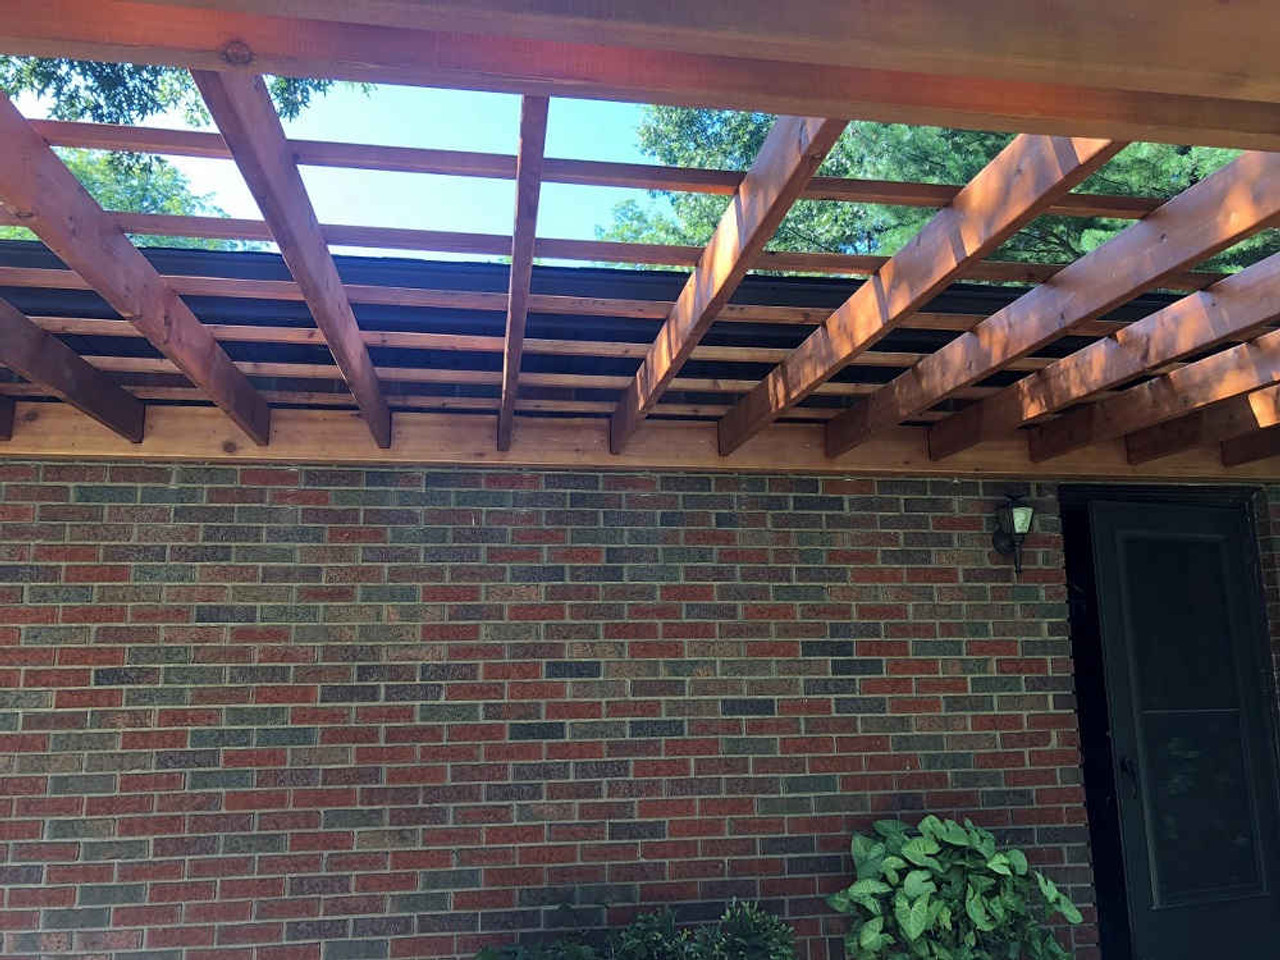 10x16 Classic Cedar Wall-Mounted with lattice roof, Doylestown, Ohio